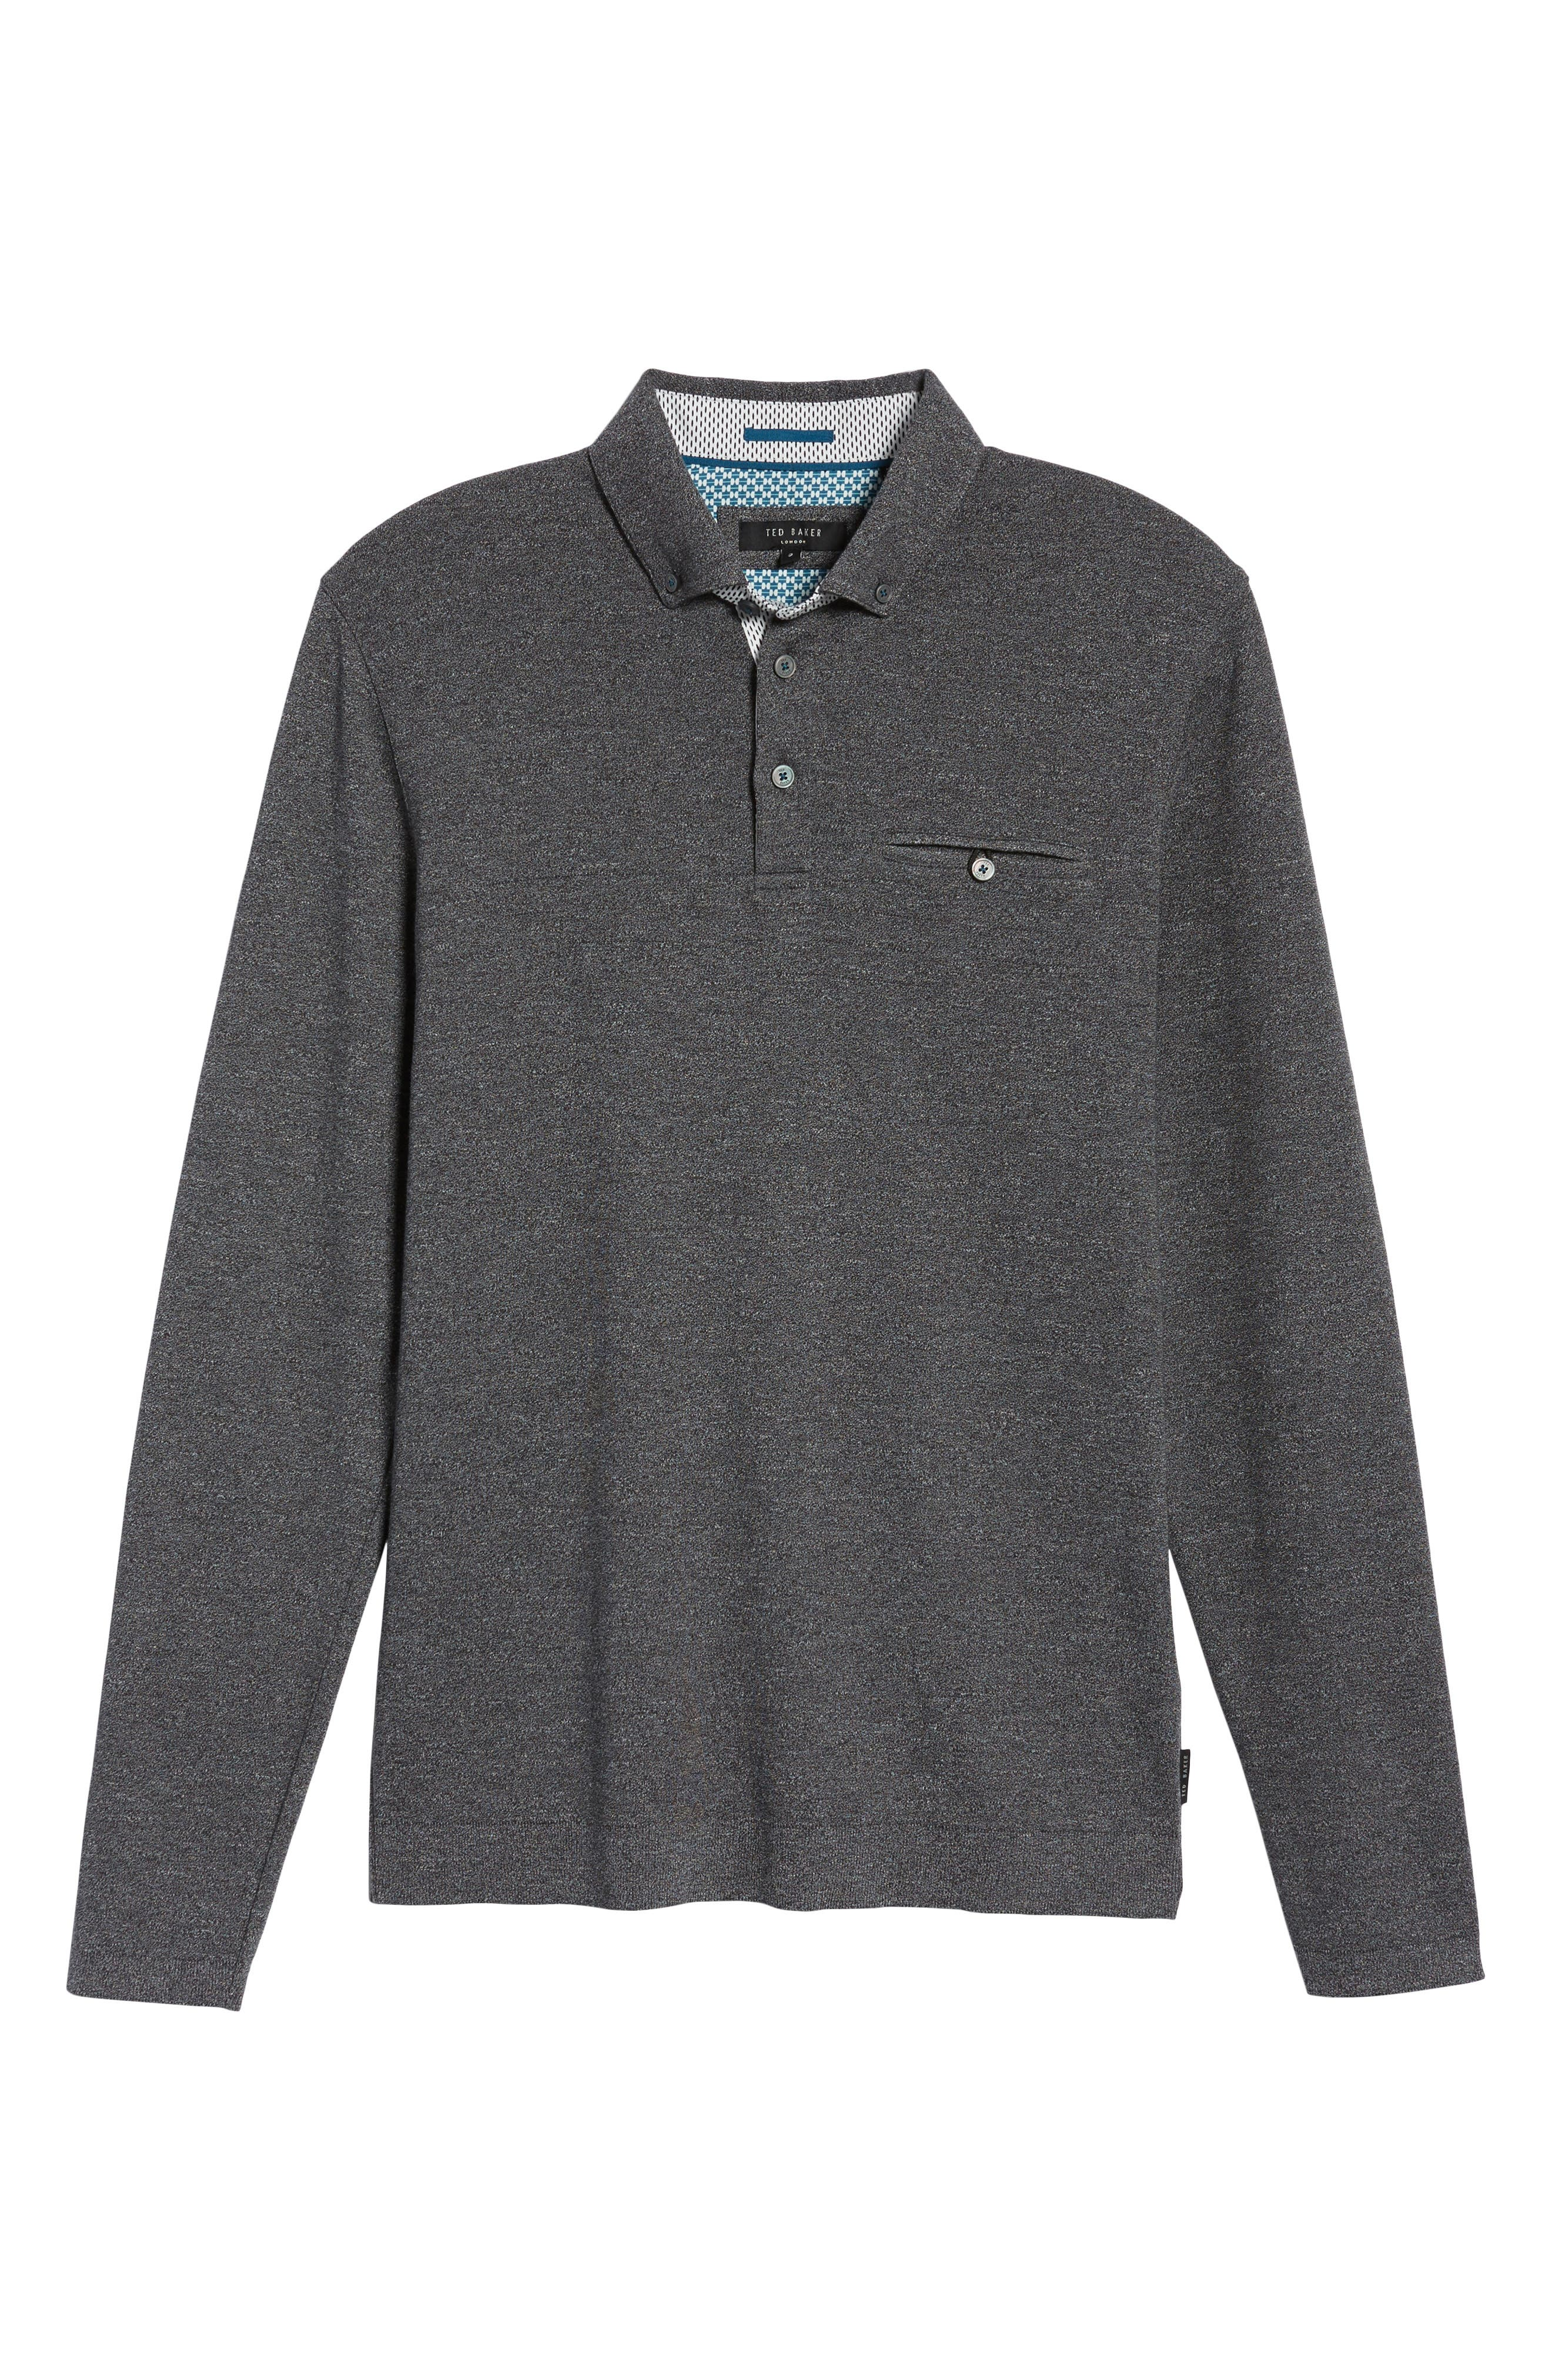 Yamway Modern Slim Fit Long Sleeve Polo,                             Alternate thumbnail 16, color,